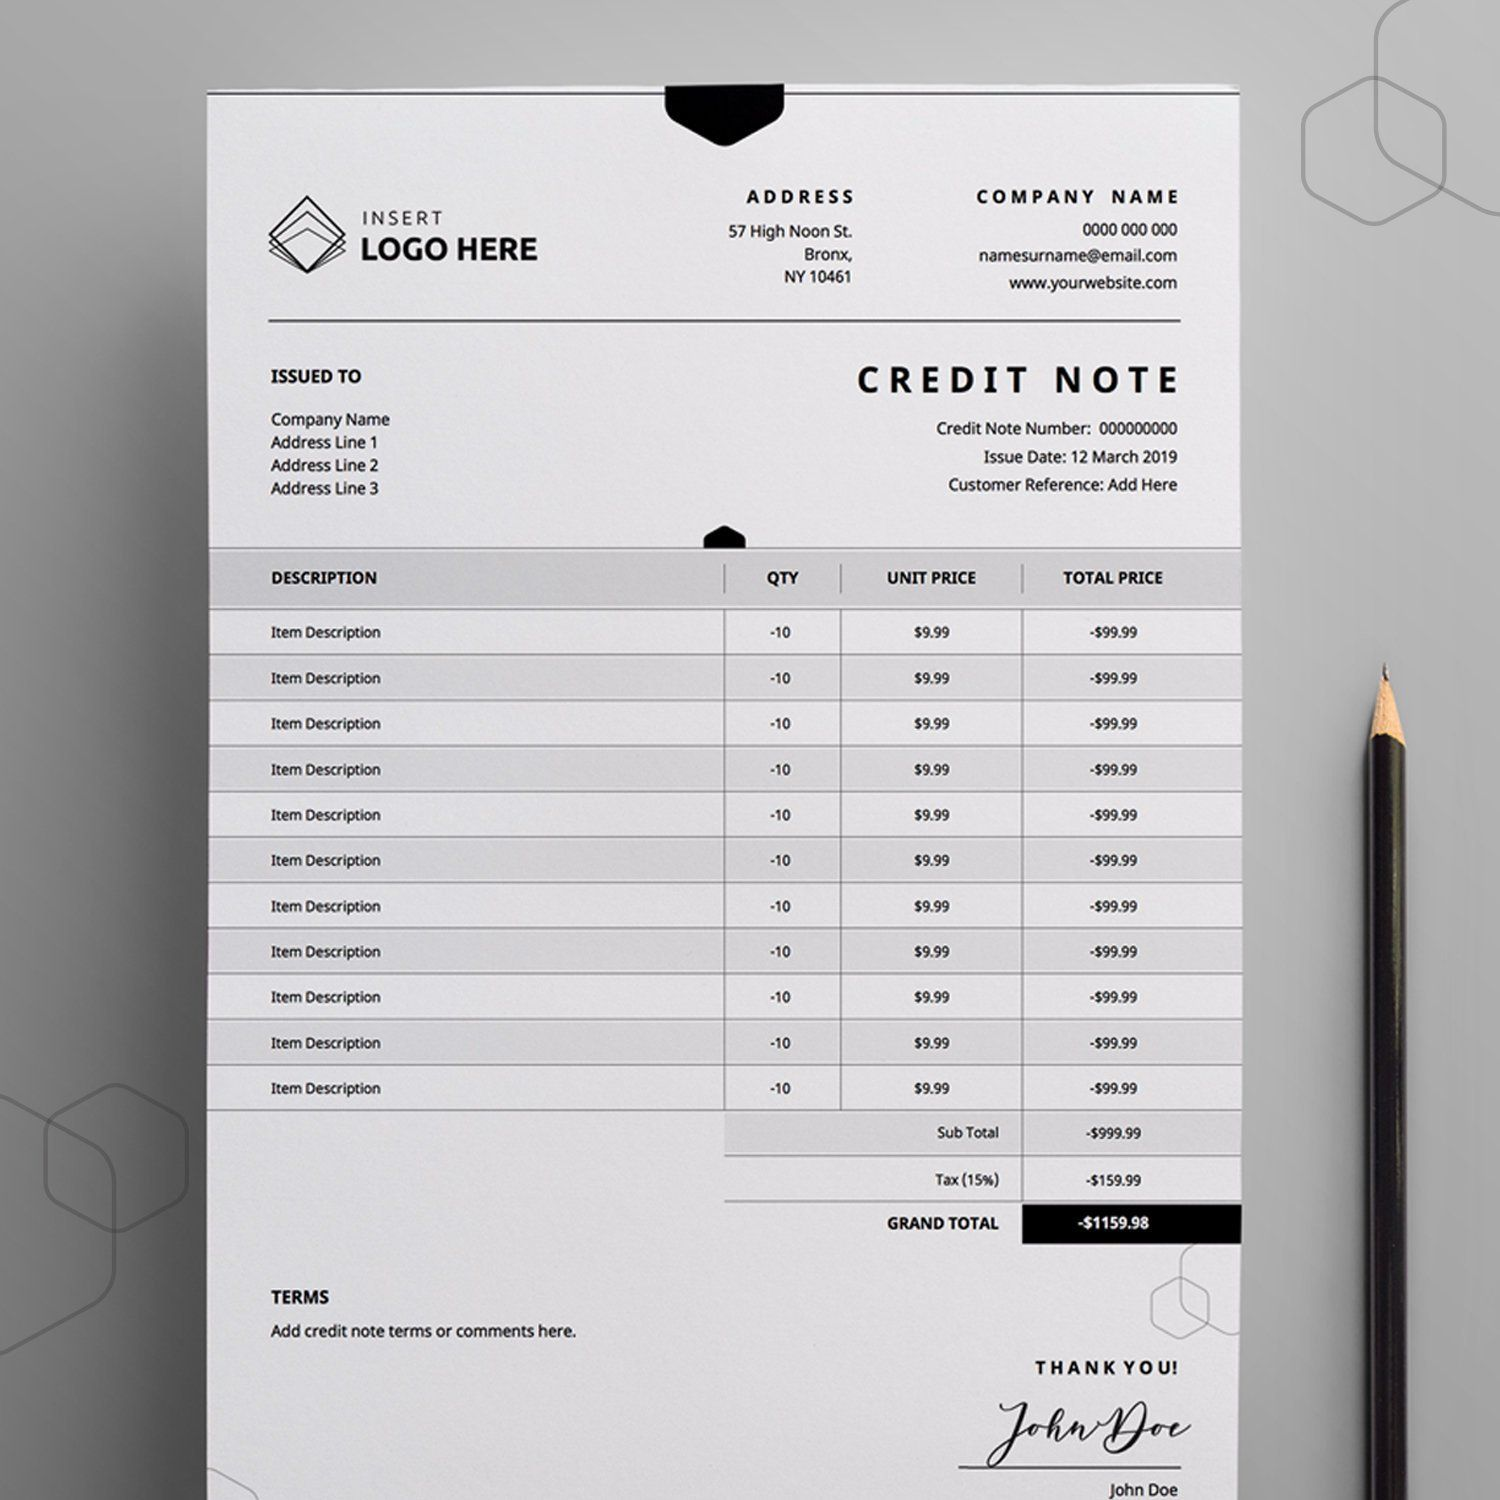 Refund Form Credit Note Template Debit Note Business Admin